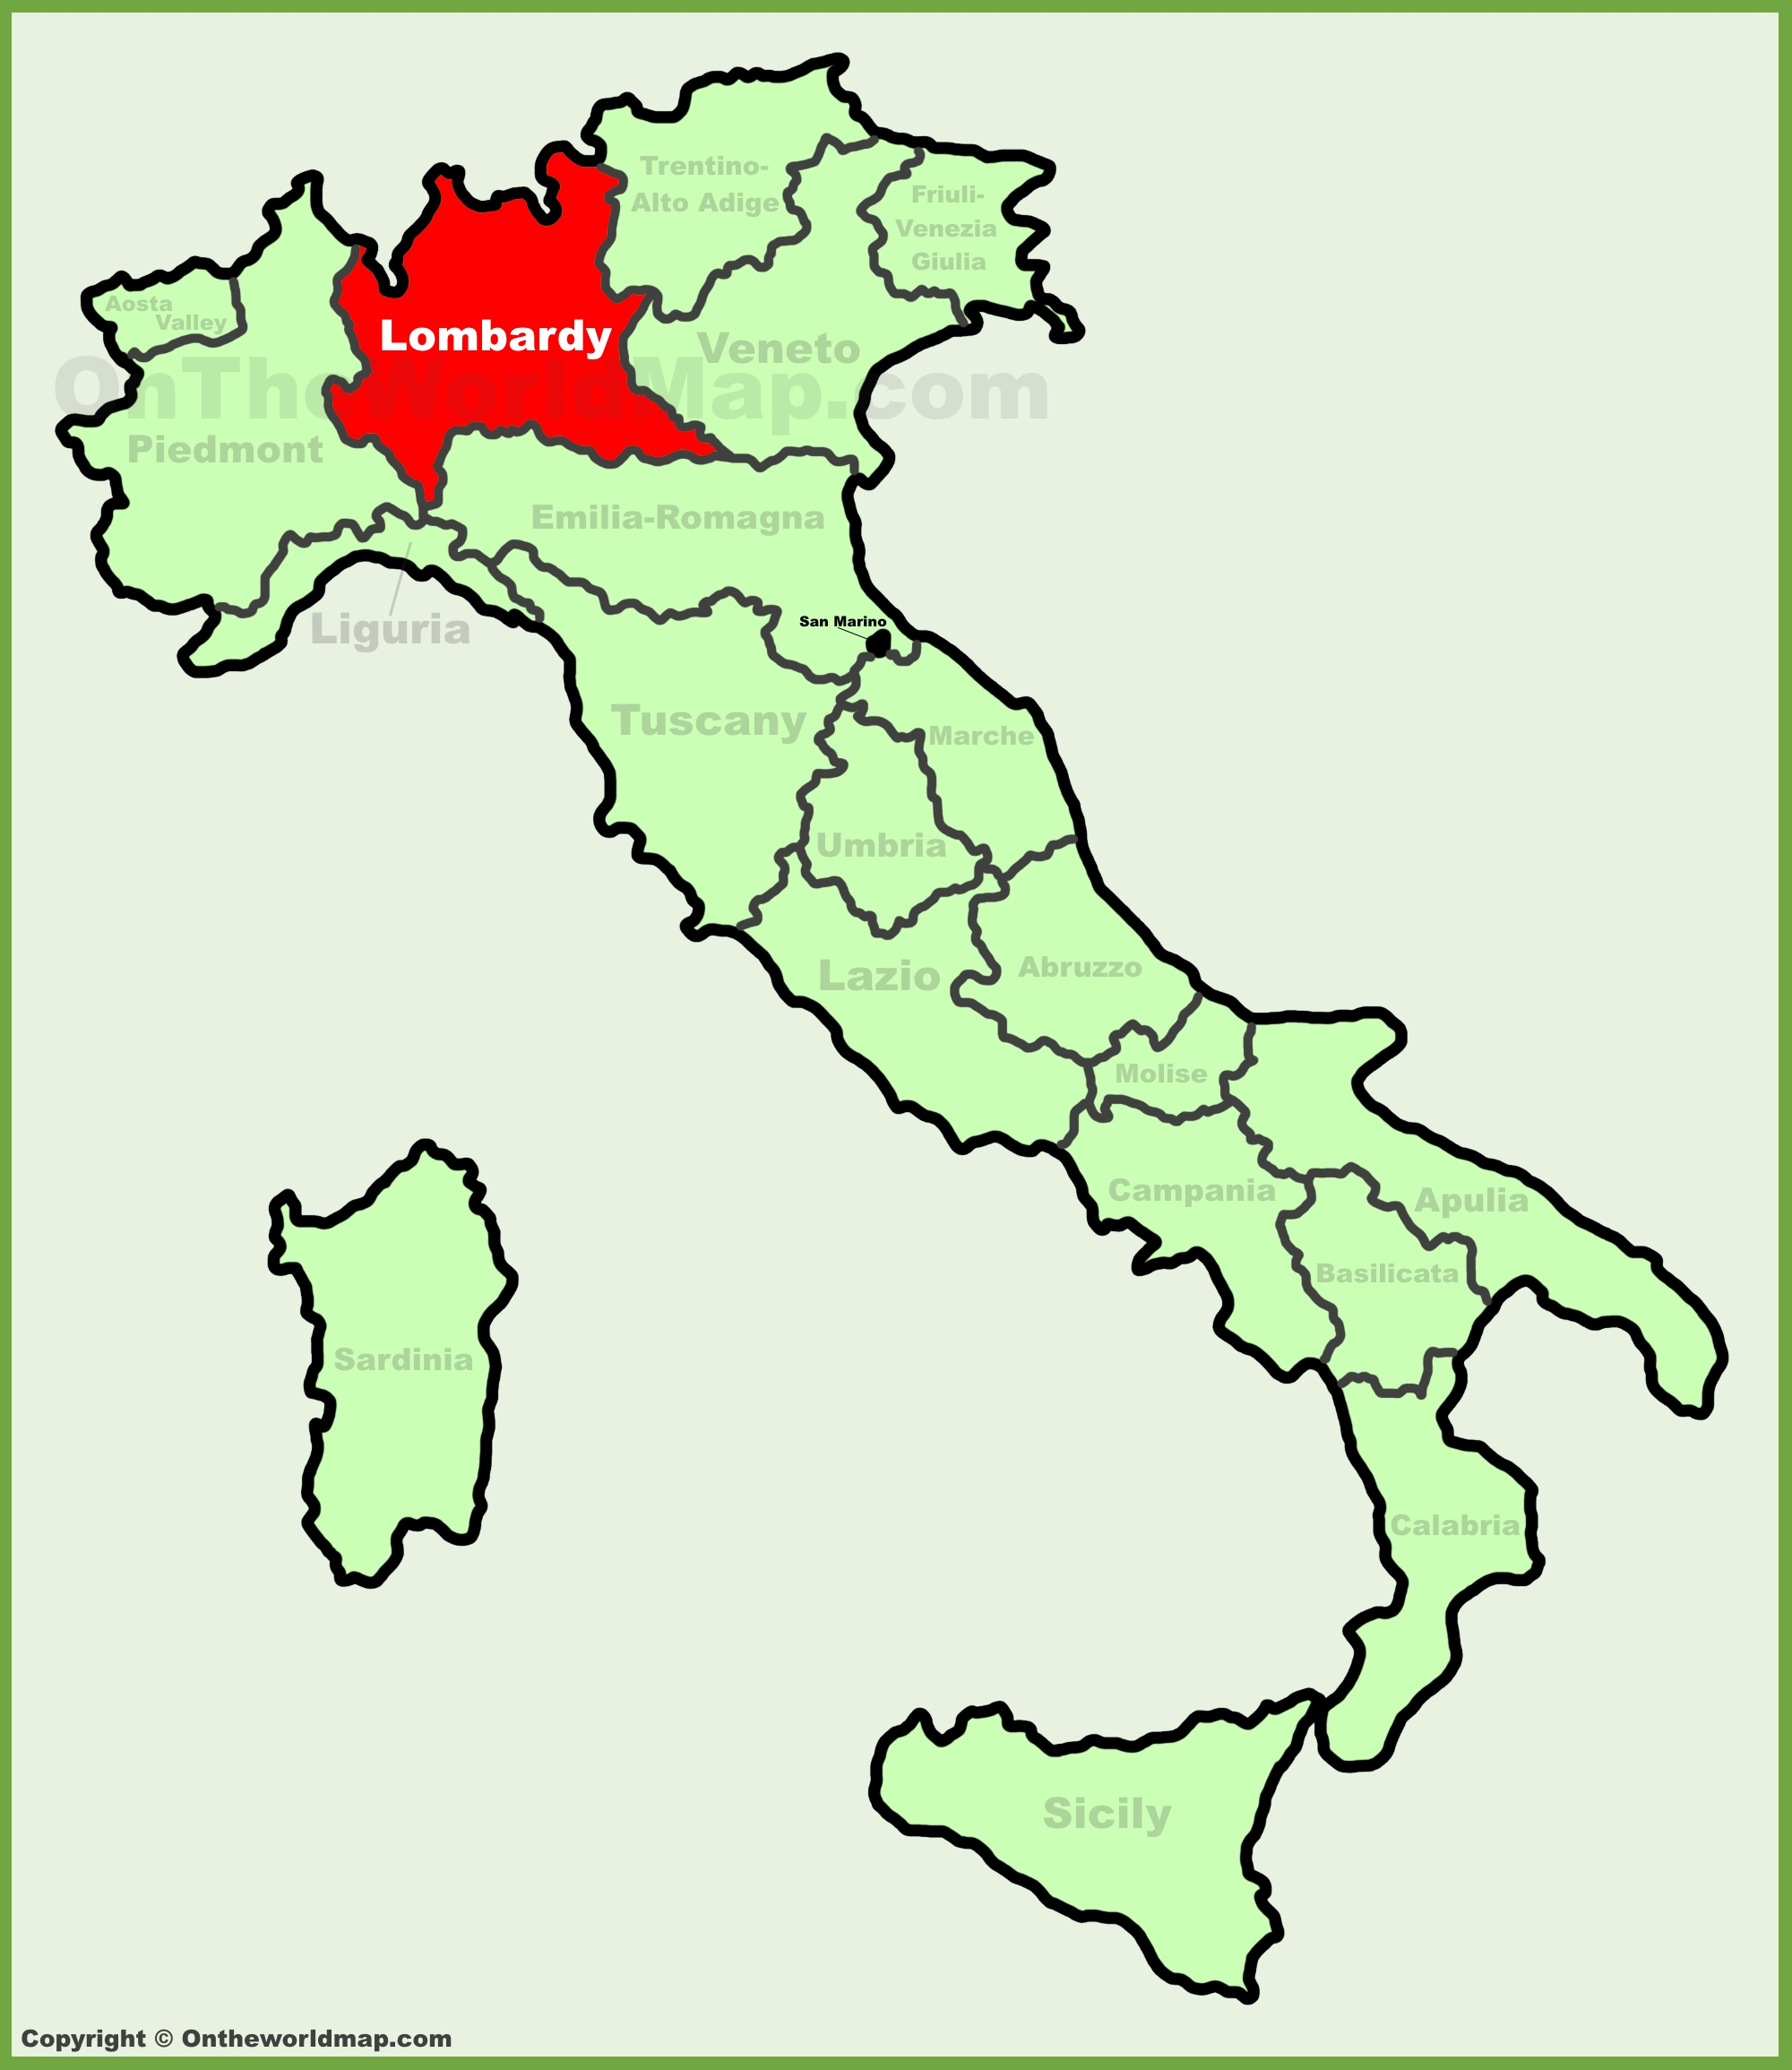 Lombardy location on the Italy map